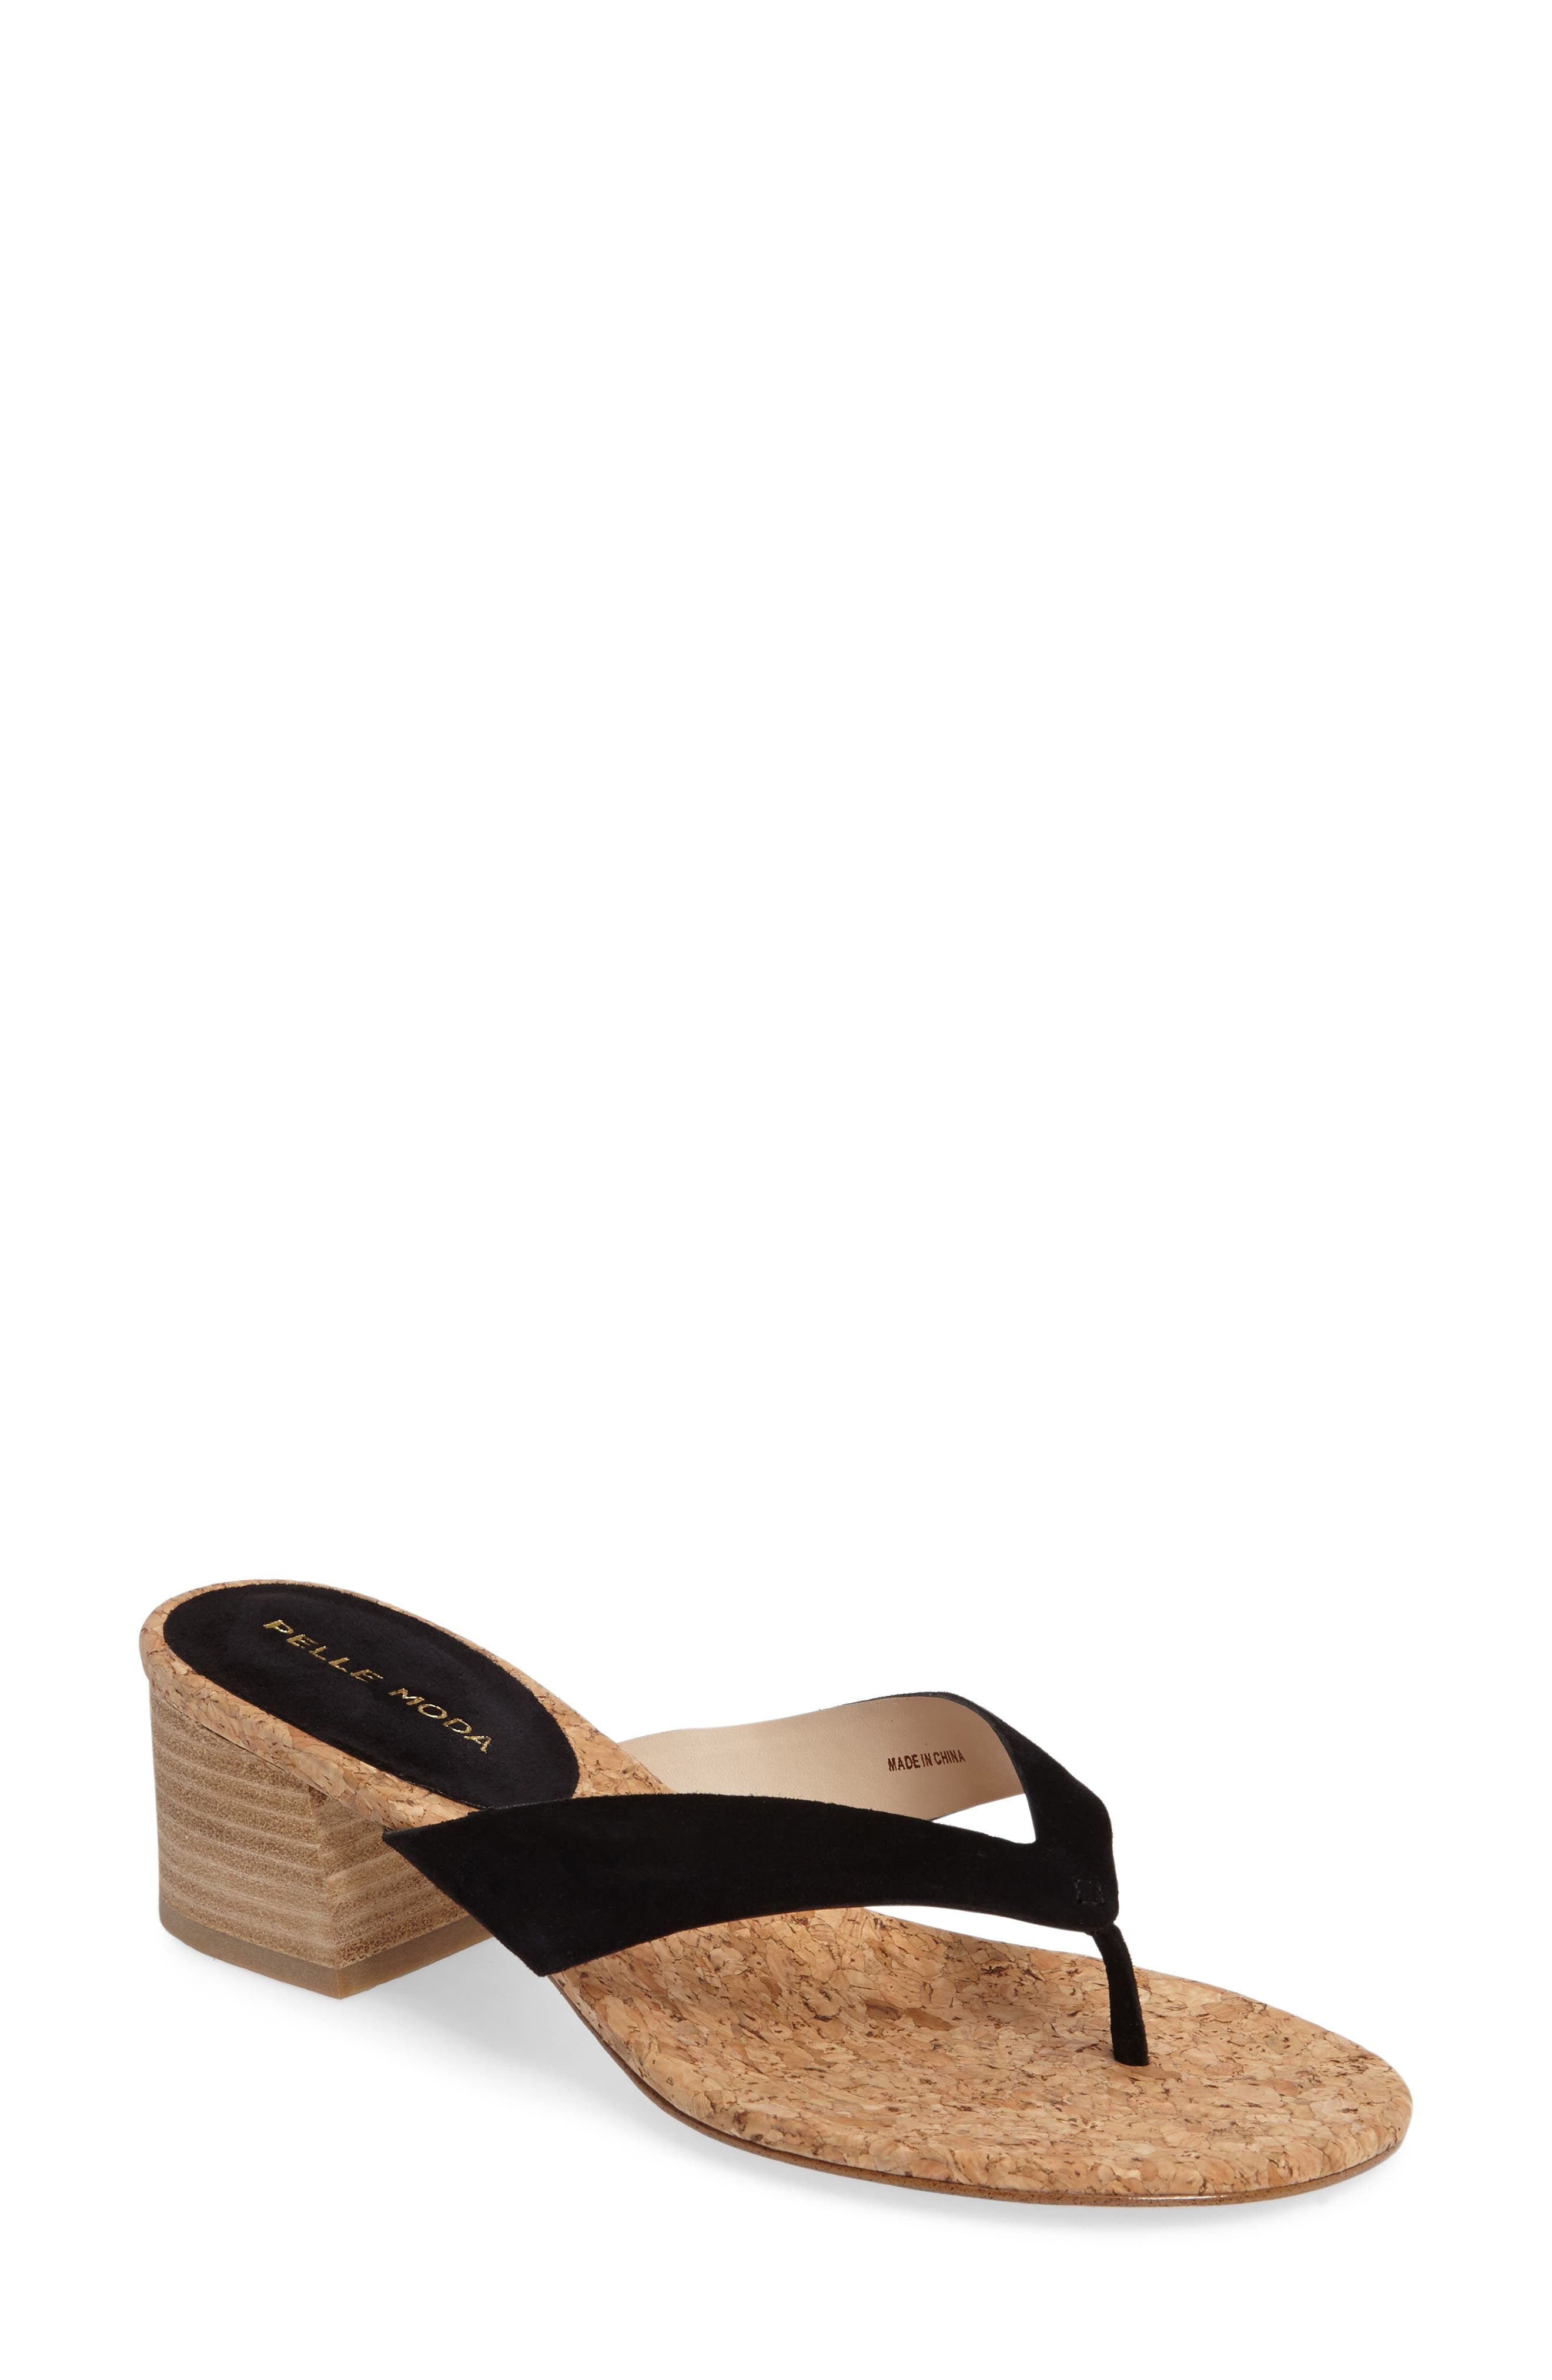 Meryl Sandal,                             Main thumbnail 1, color,                             Black Leather